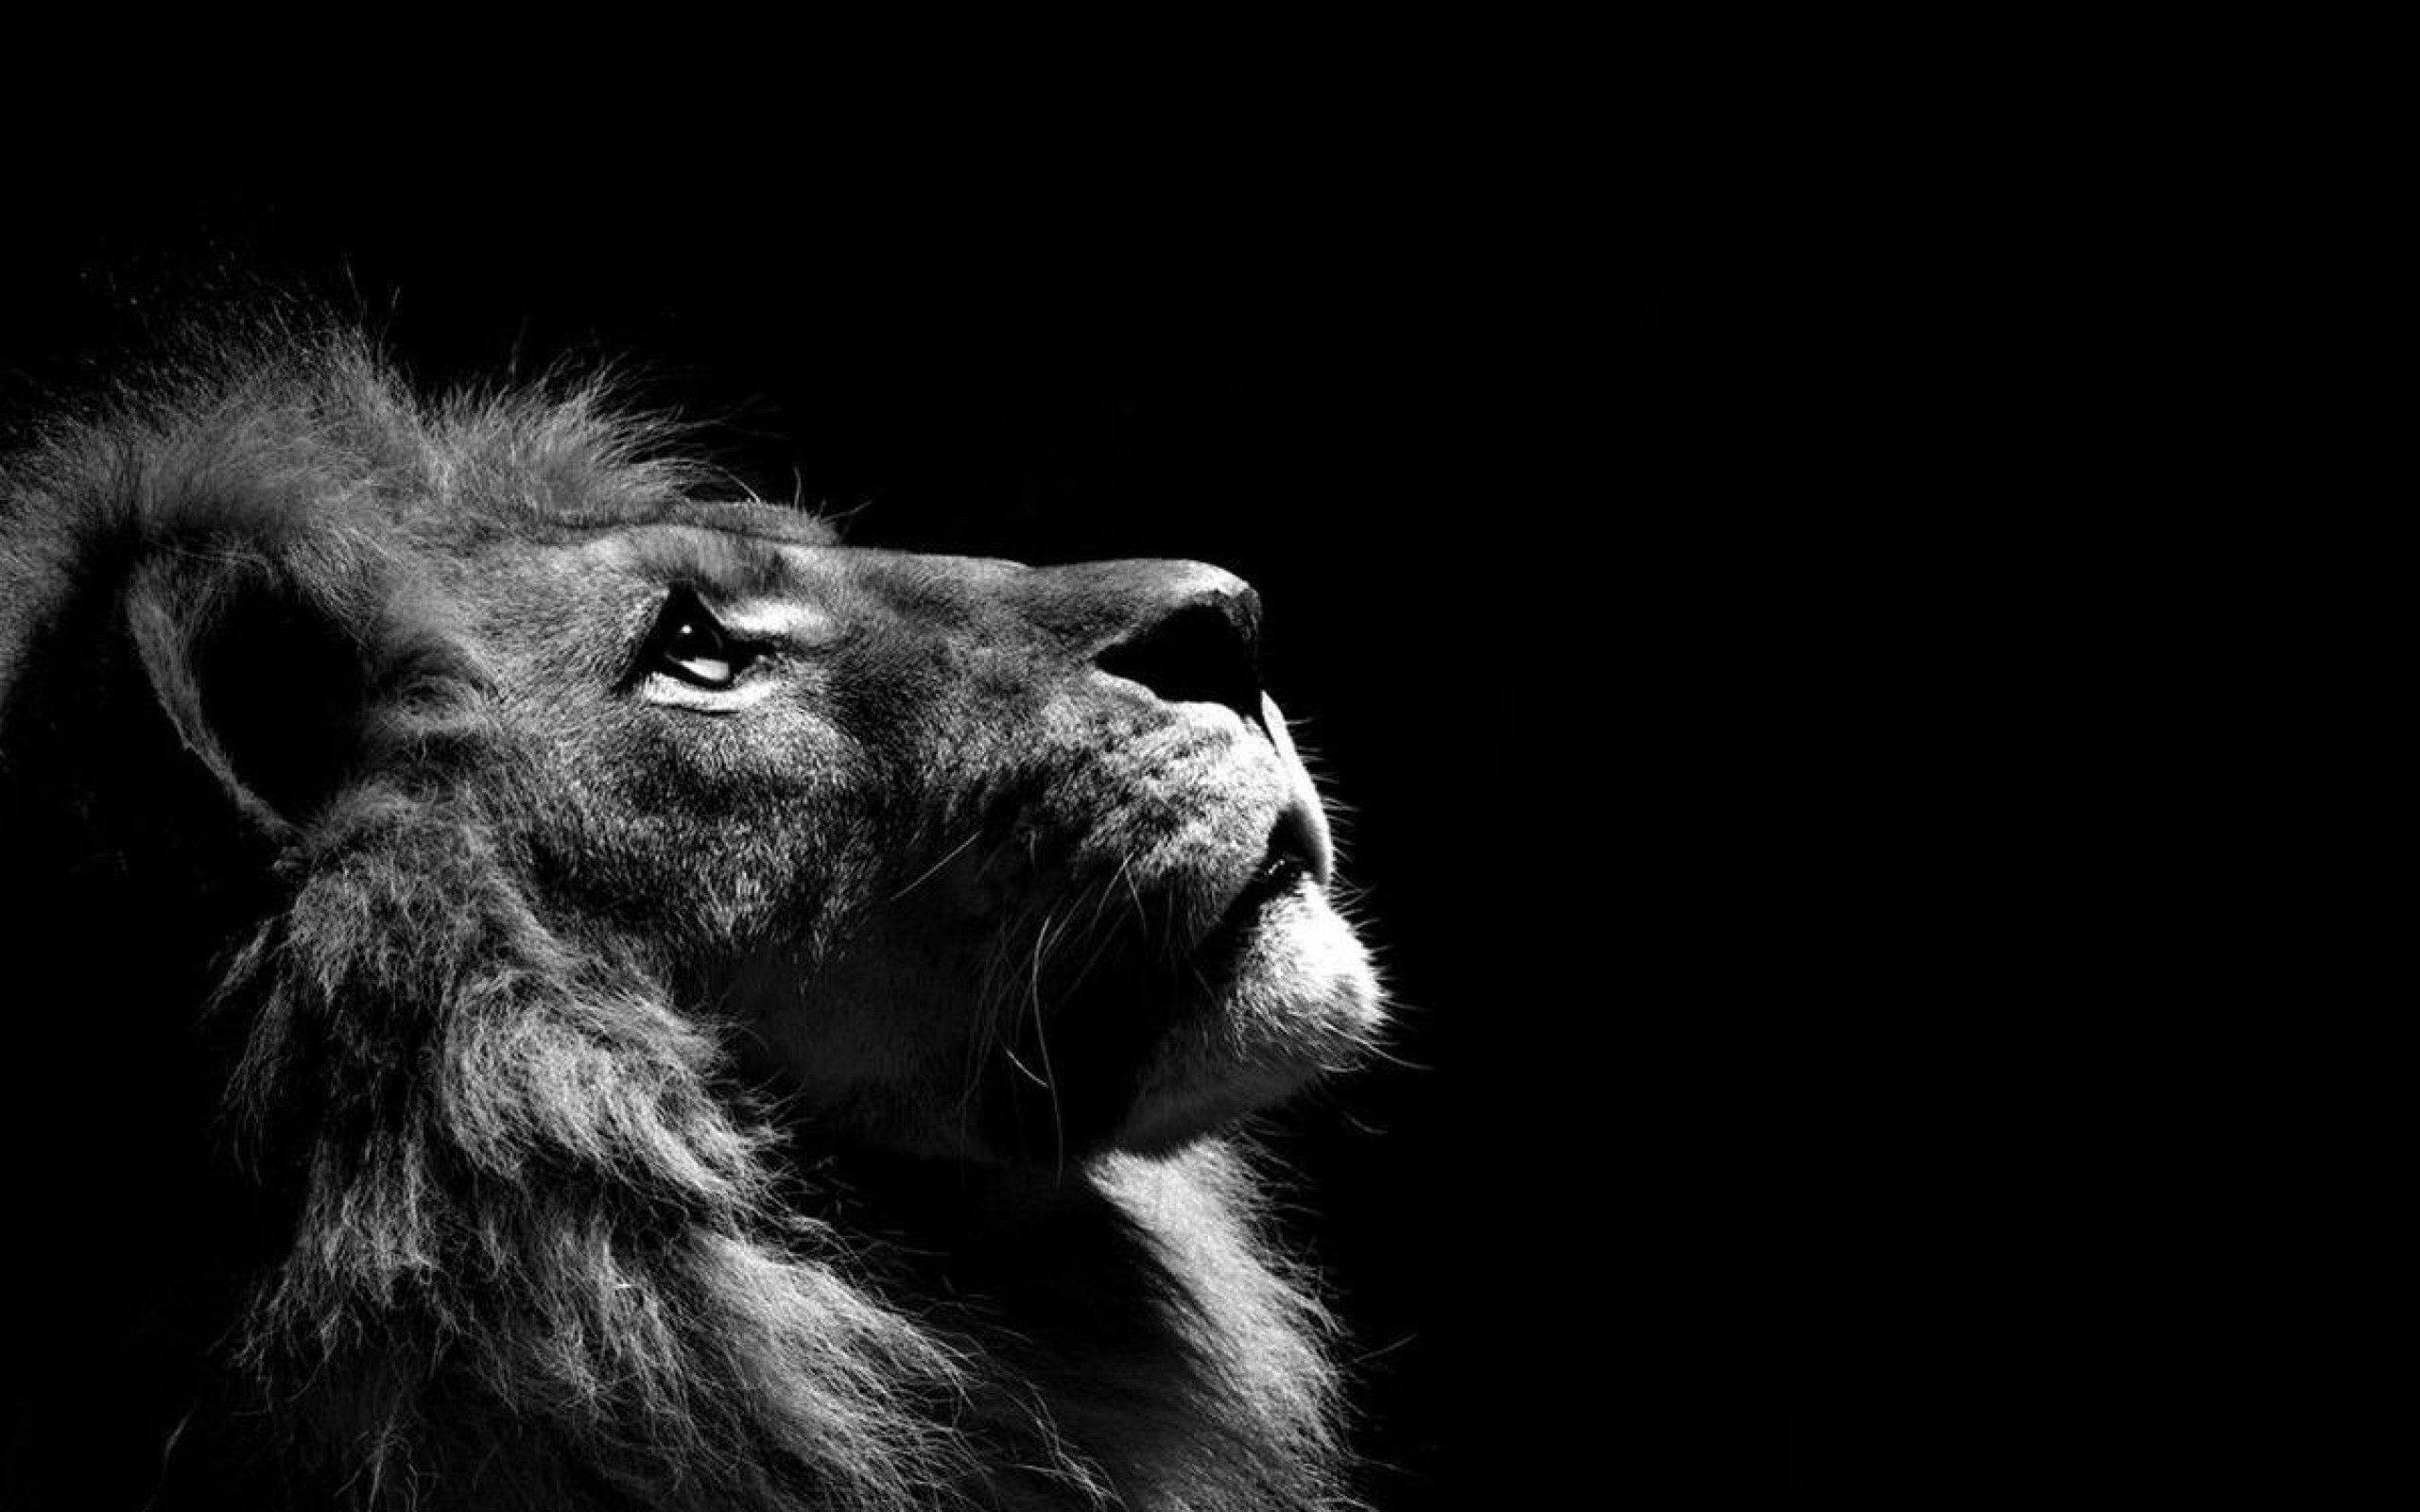 Black and White Lion Wallpapers - Top Free Black and White Lion Backgrounds  - WallpaperAccess